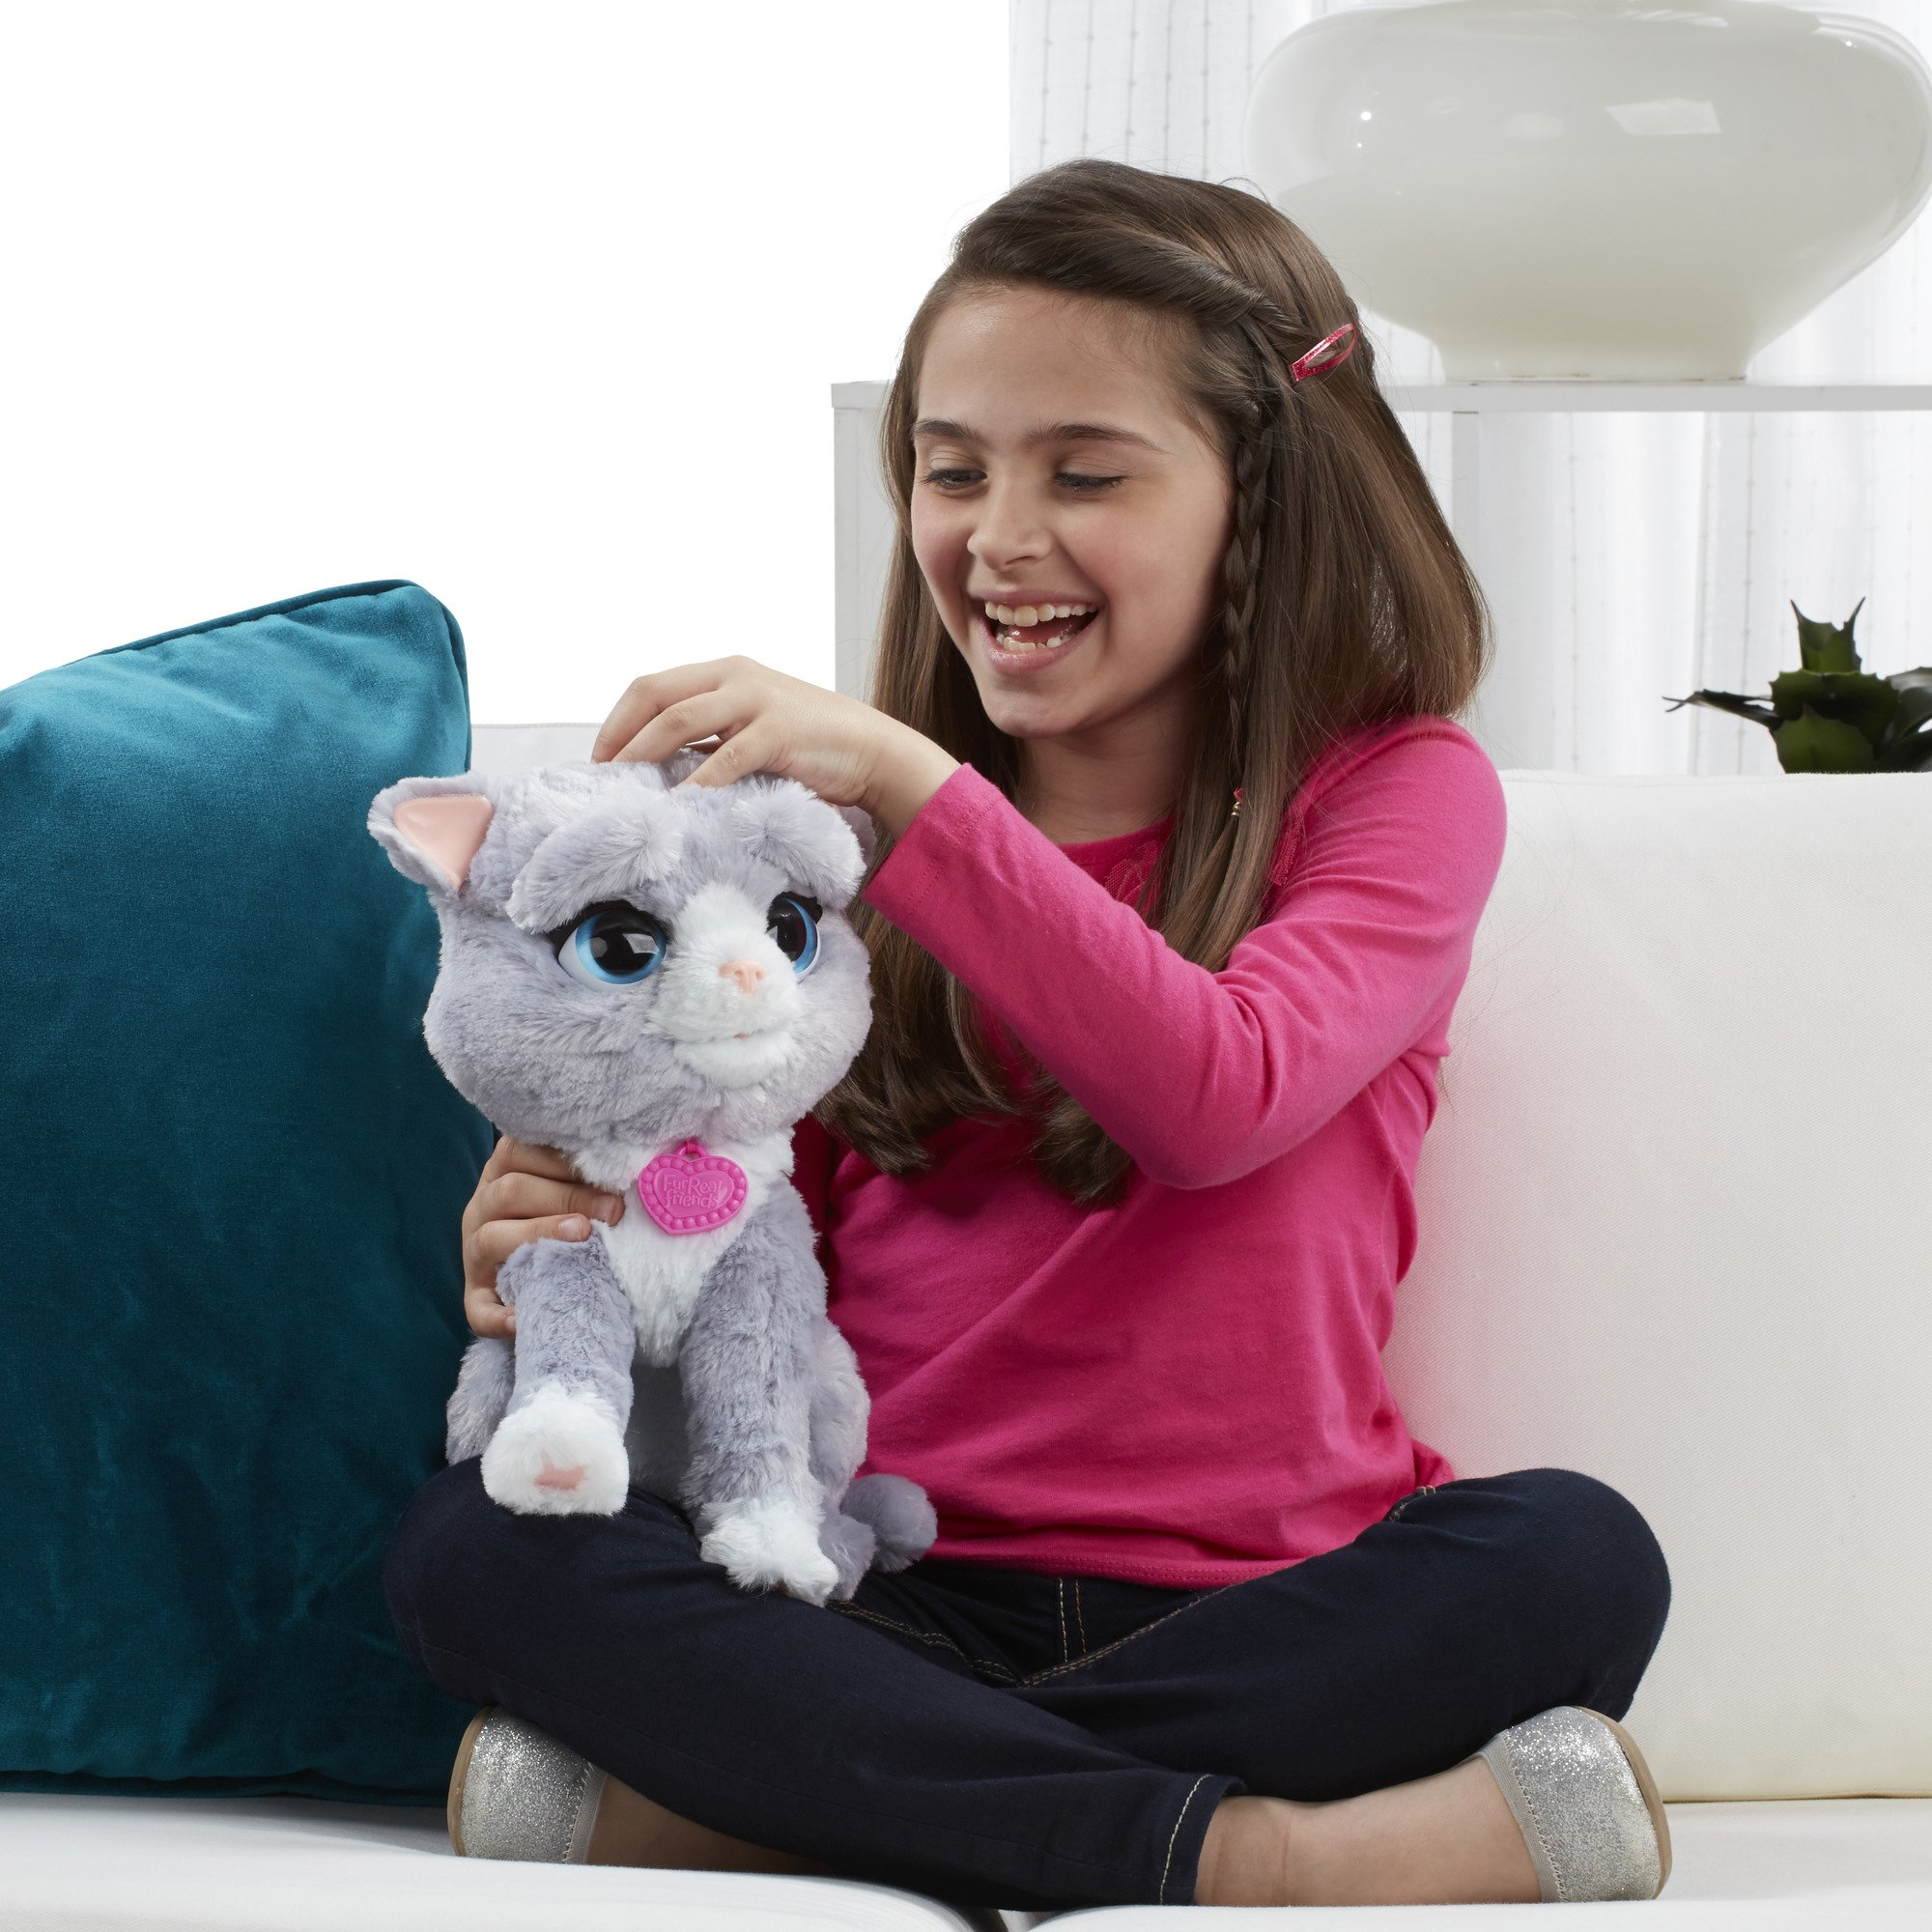 FurReal B5936AF1 Bootsie Interactive Plush Kitty Toy, Ages 4 & Up by FurReal (Image #9)